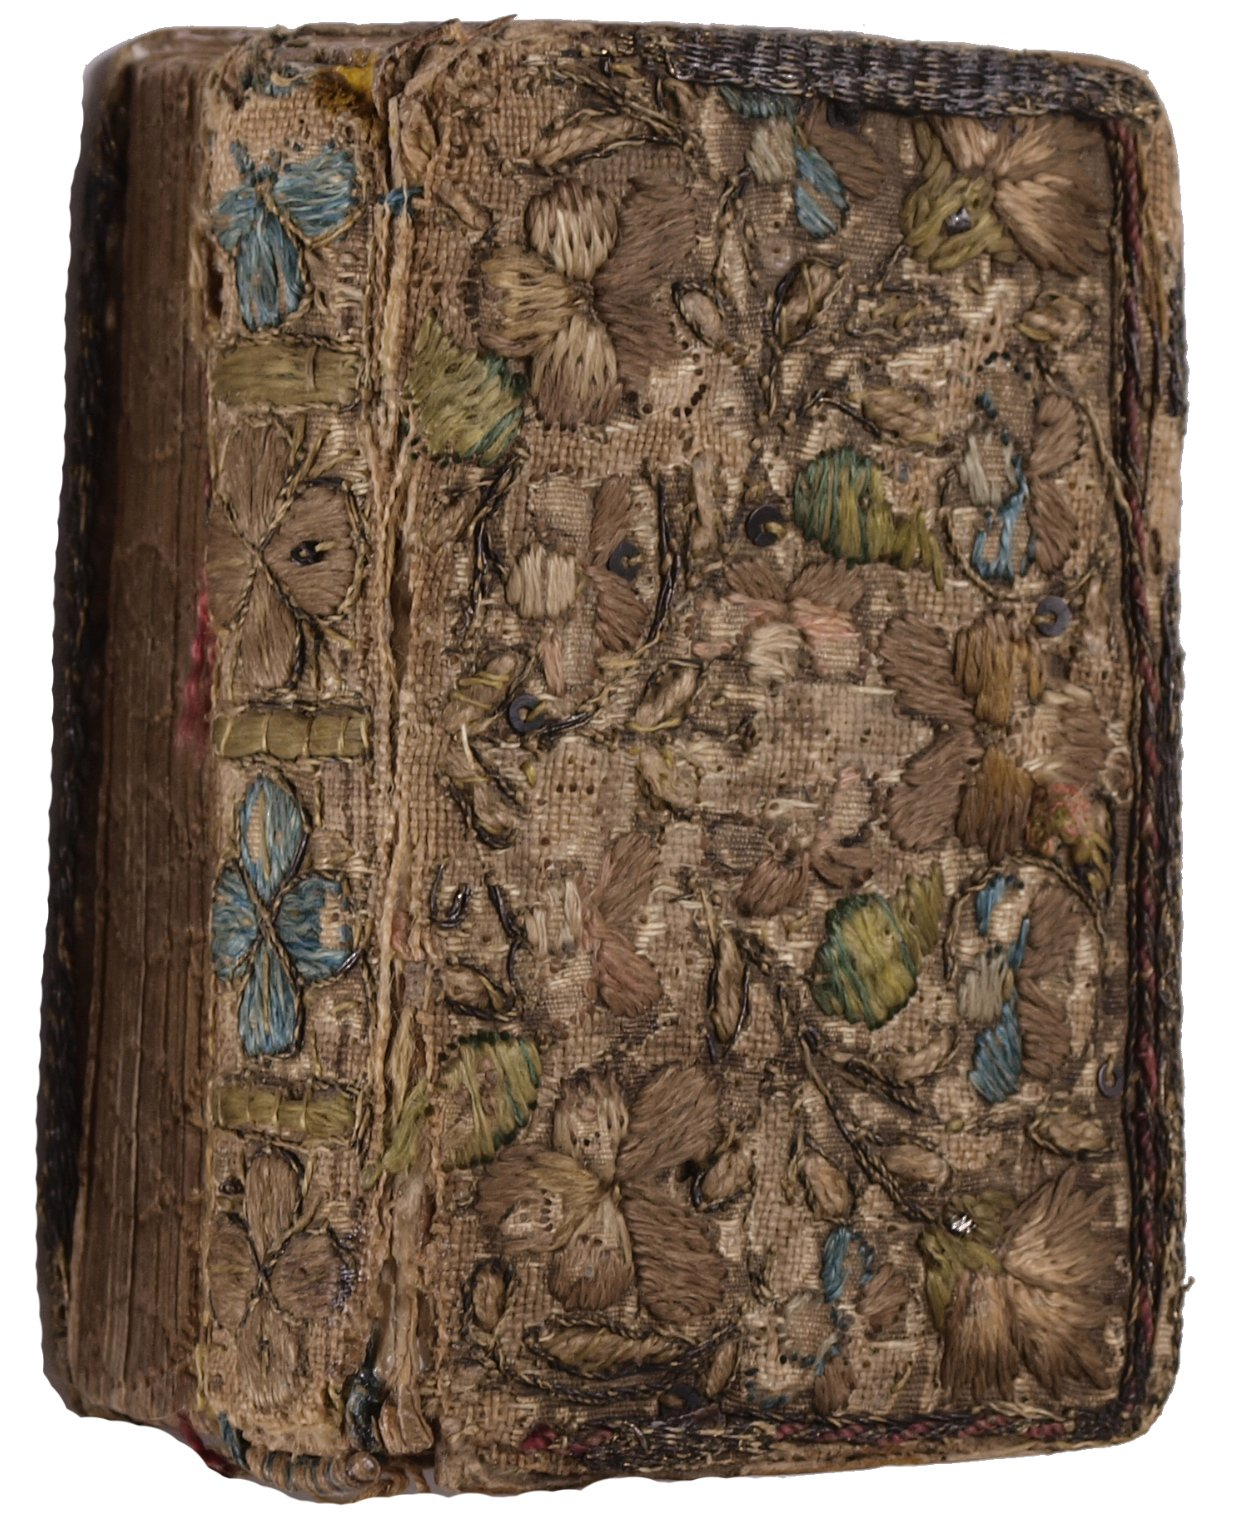 Front cover and spine, STC 2406.